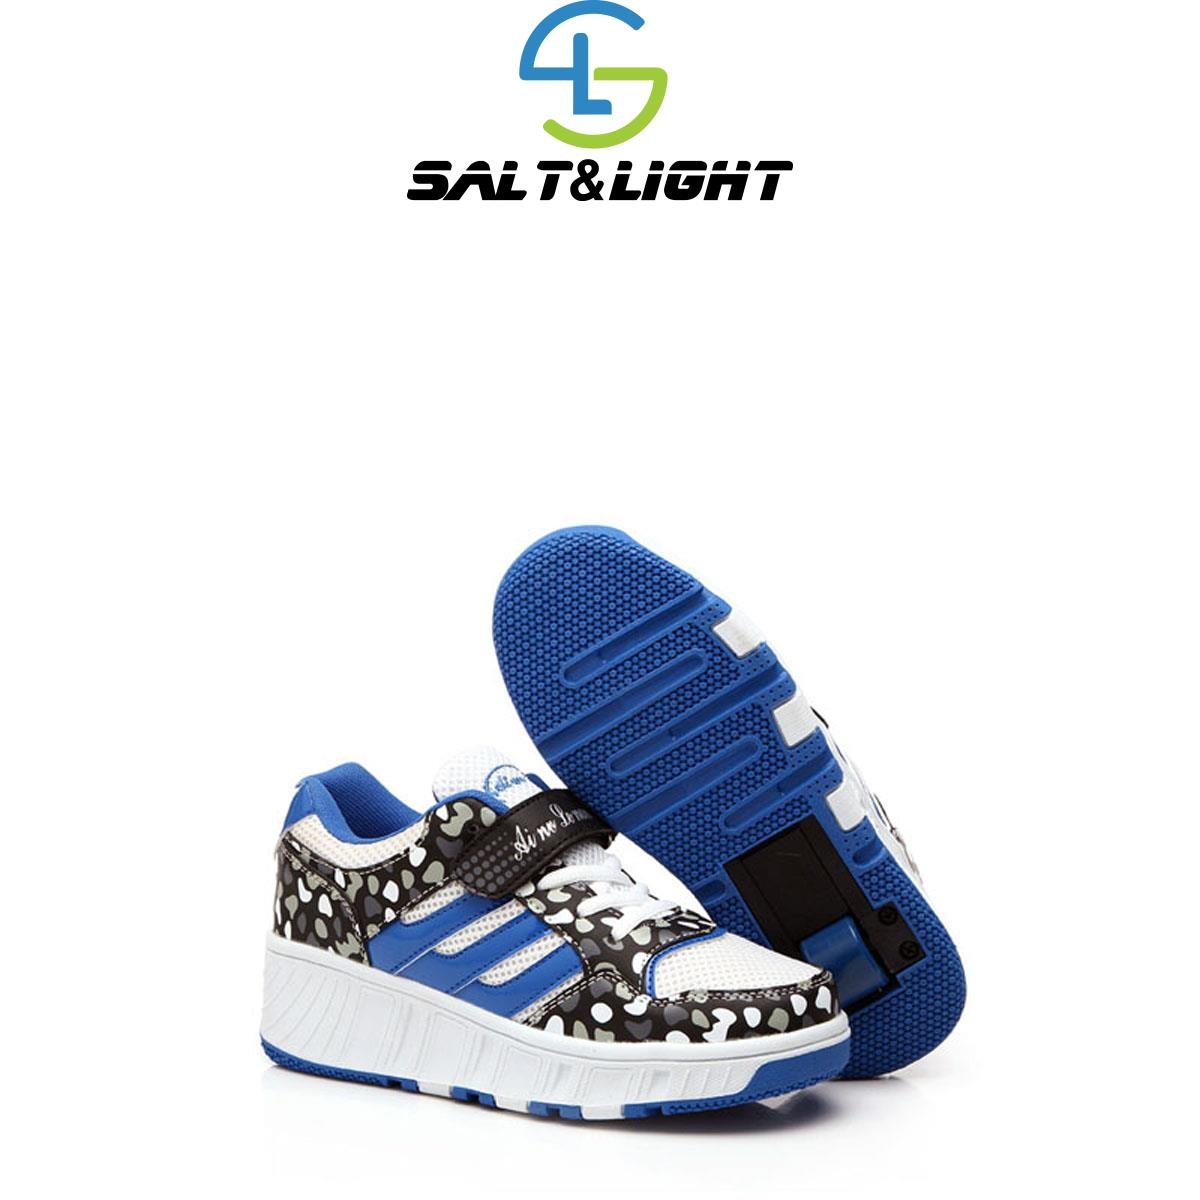 Roller shoes shop - New 2016 Hot Children Wheeled Girls Boys Roller Shoes With Two Wheels Roller Skate Trainers Kids Fashion Sneakers Size